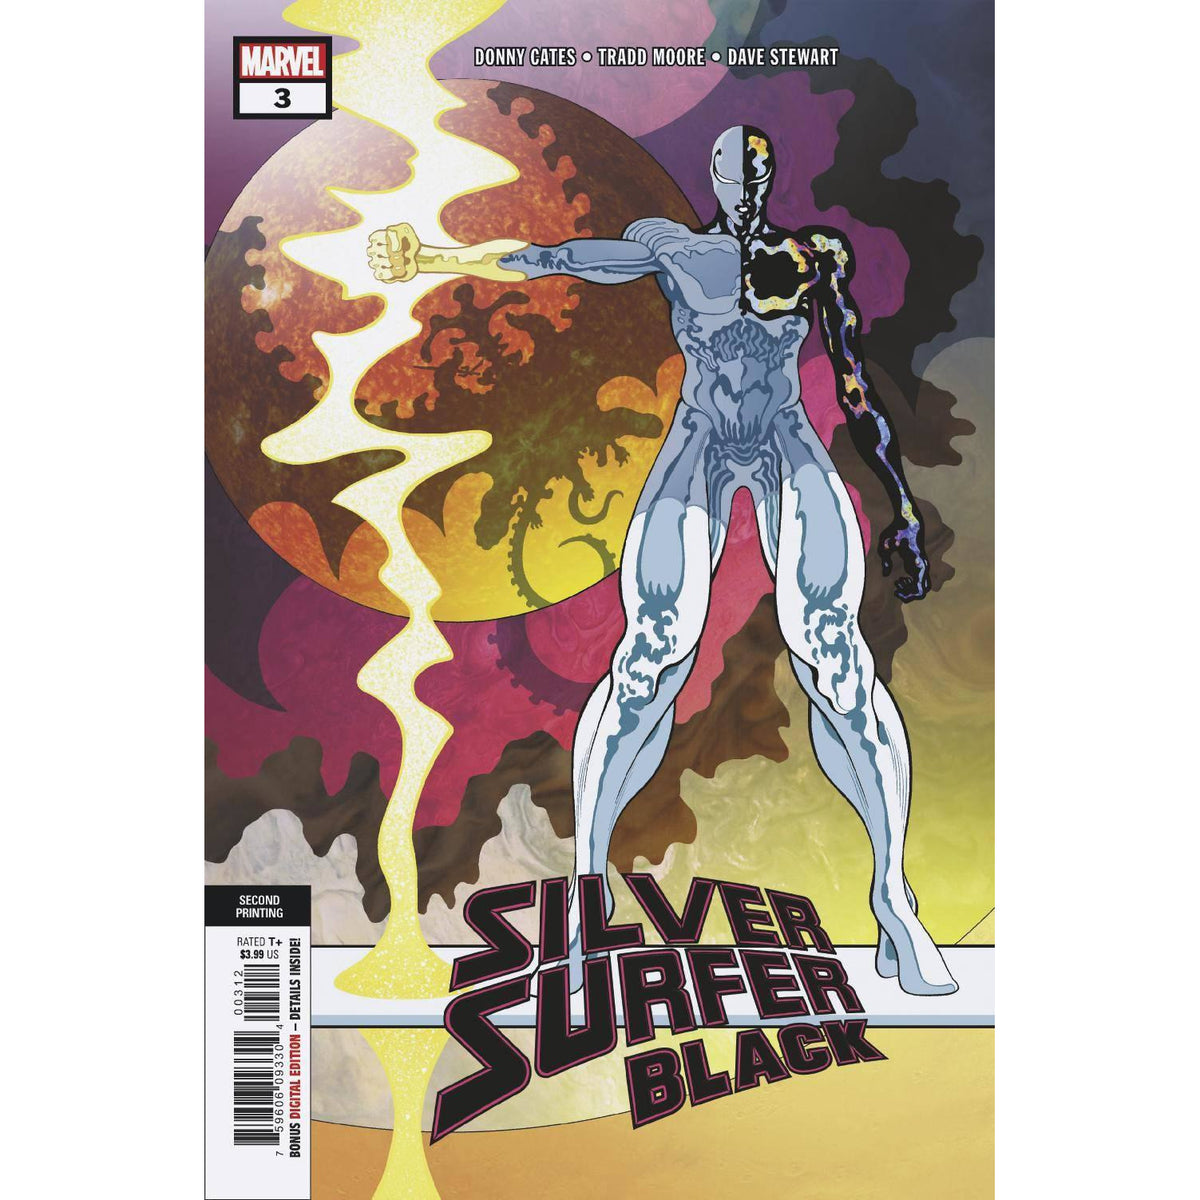 SILVER SURFER BLACK #3 (OF 5) 2ND PRINTING MOORE VARIANT COVER